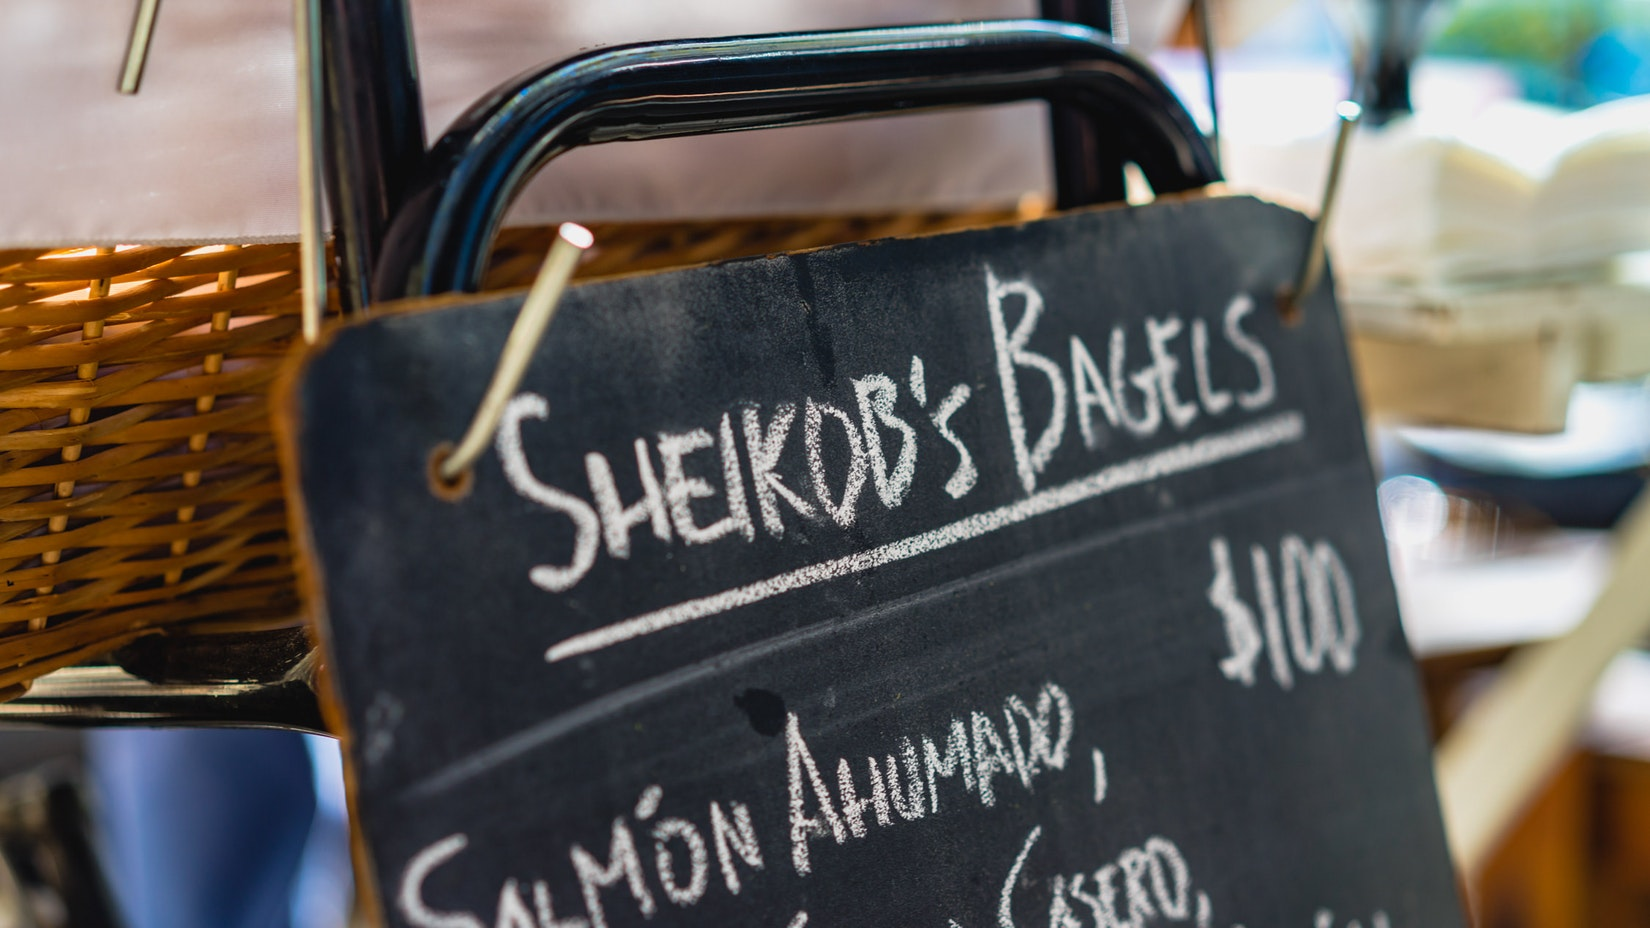 Sheikob's Bagel sign in Buenos Aires